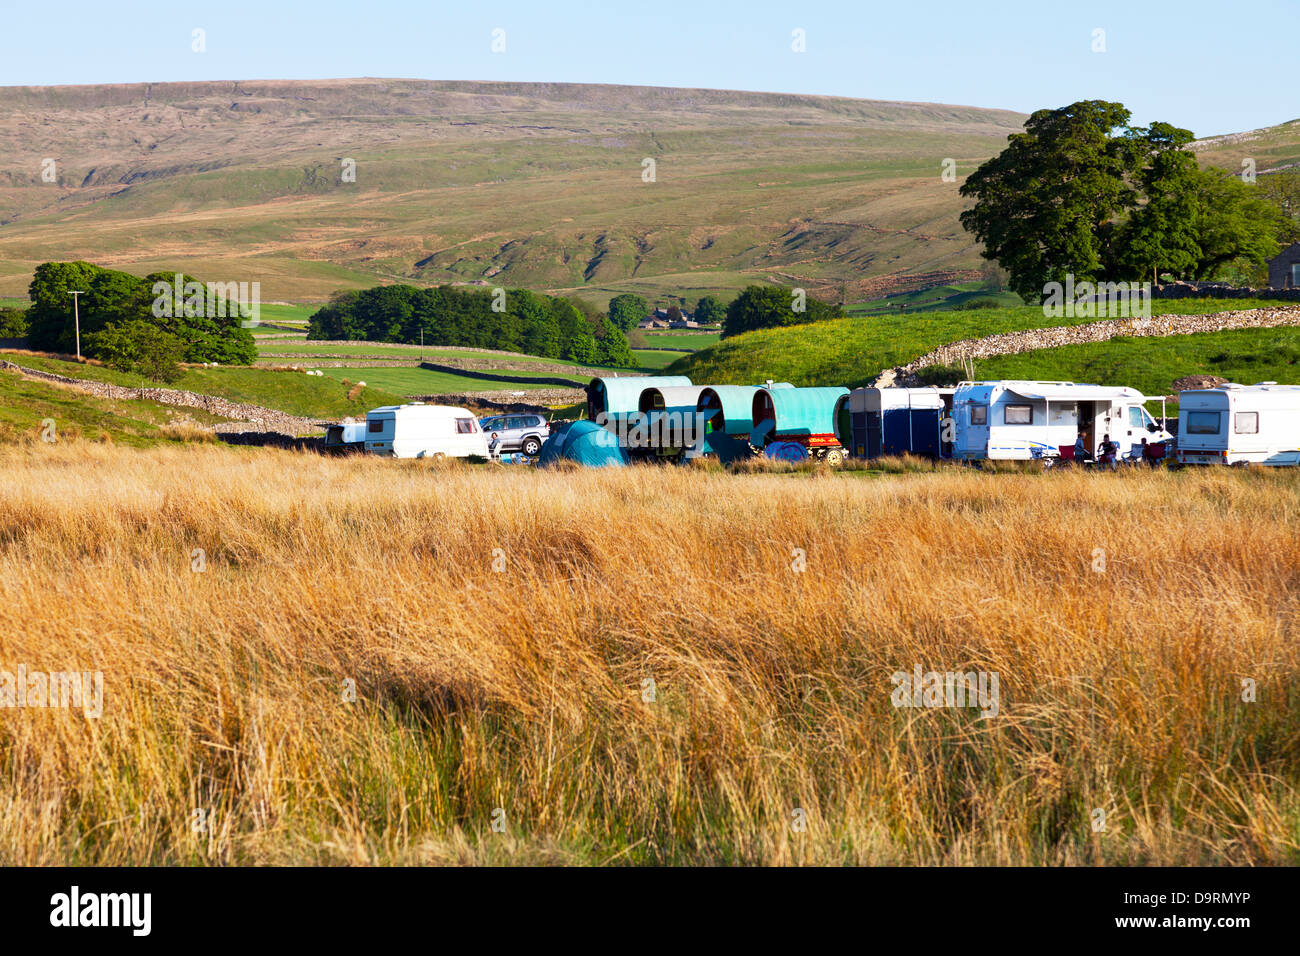 Gypsies camped in field near Appleby, Cumbria, Lake District national park, UK, England - Stock Image